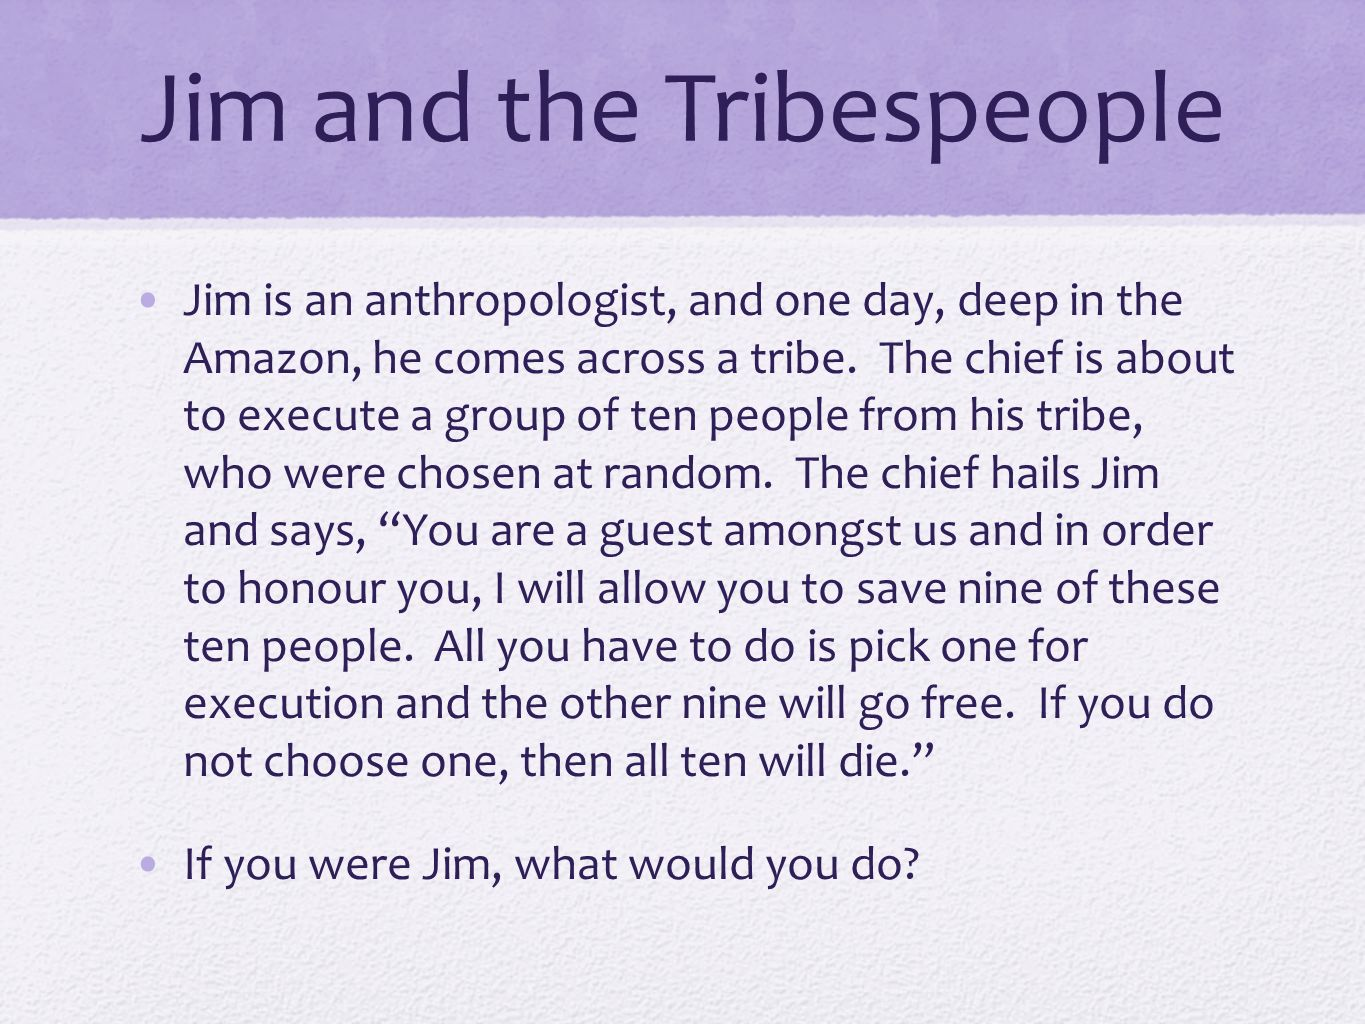 Jim and the Tribespeople